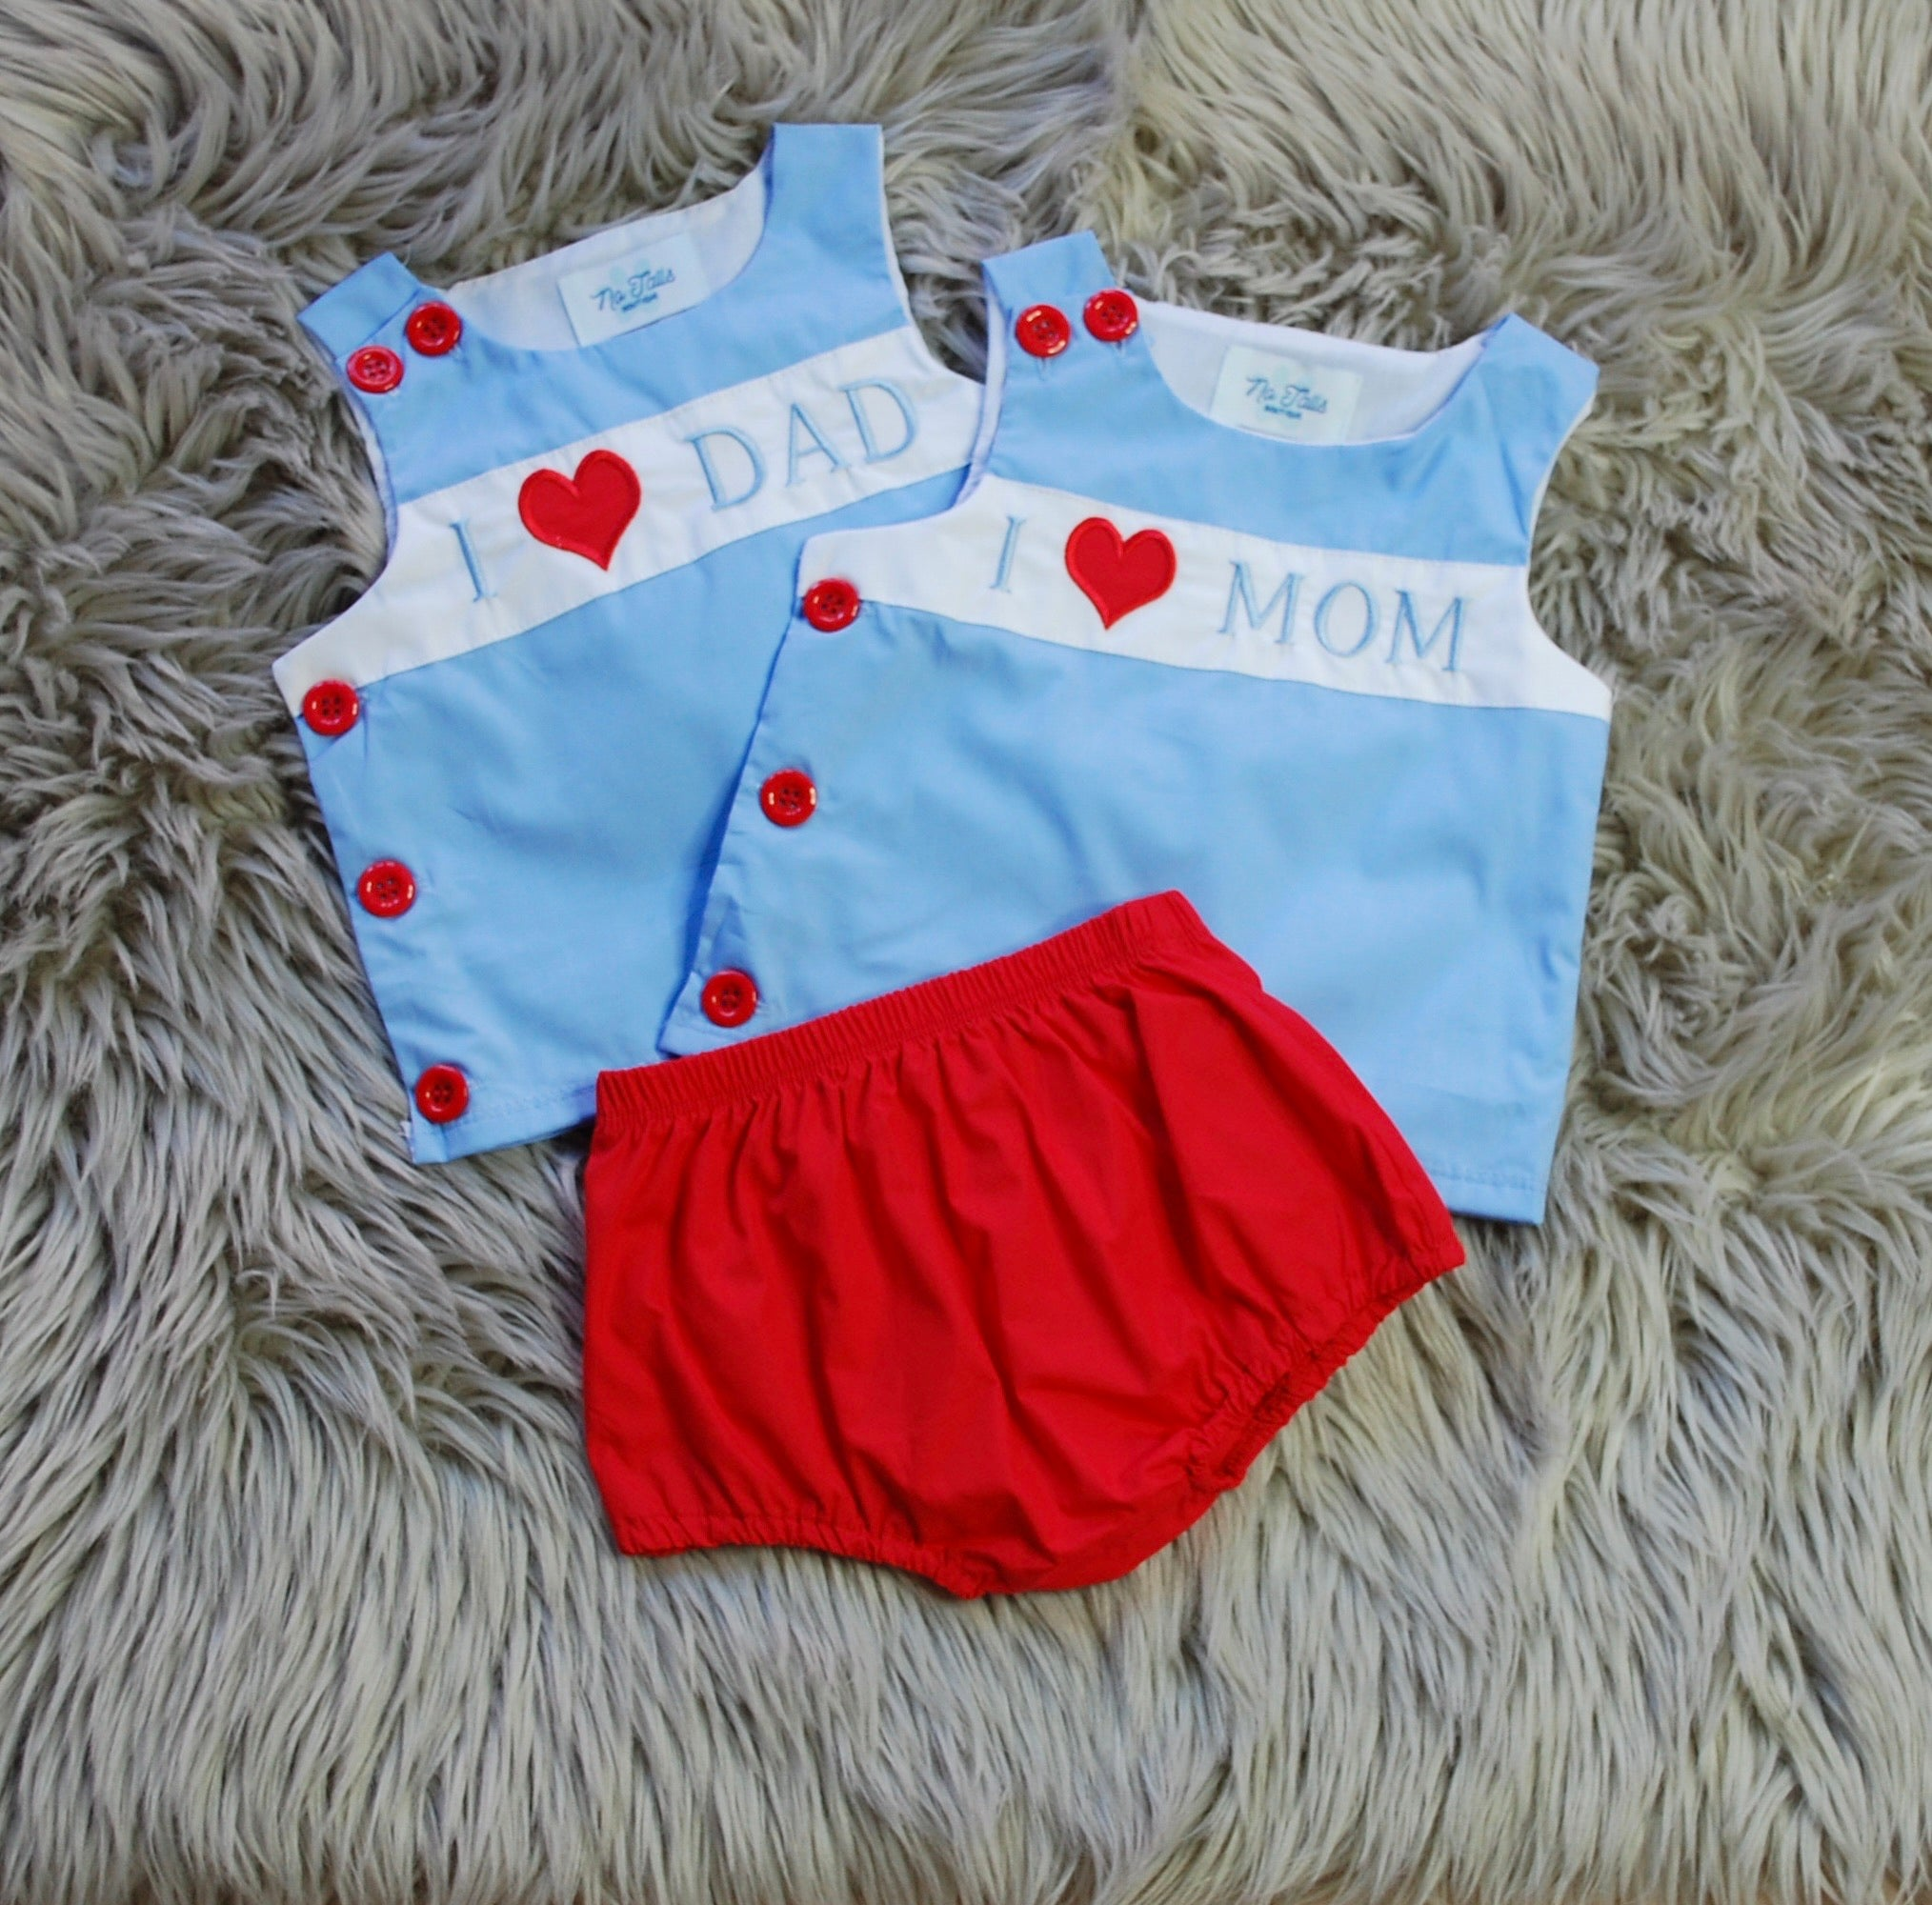 I Heart MOM/DAD Boys Diaper Set